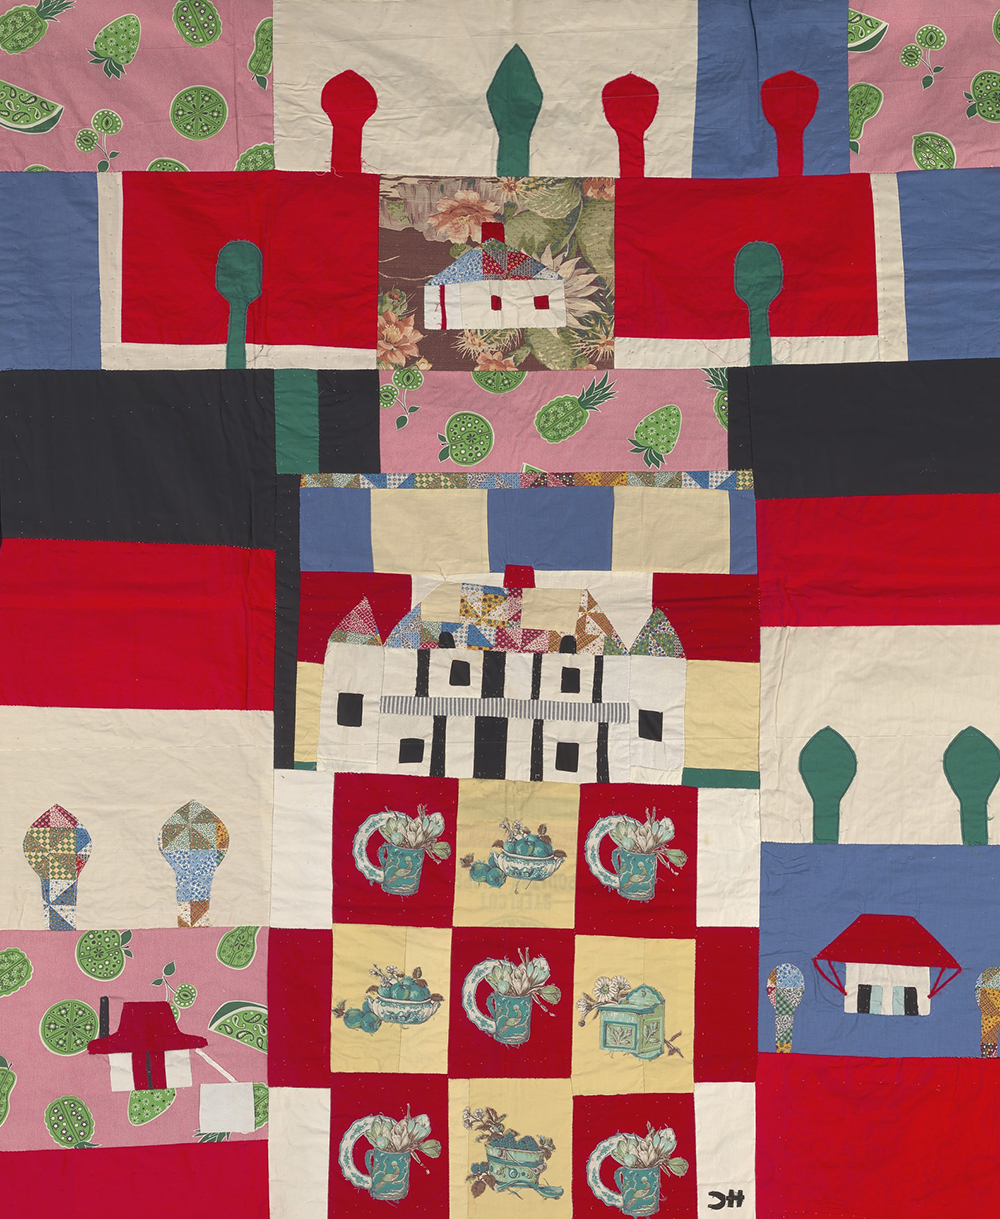 Melrose Quilt, by Clementine Hunter, c. 1960.